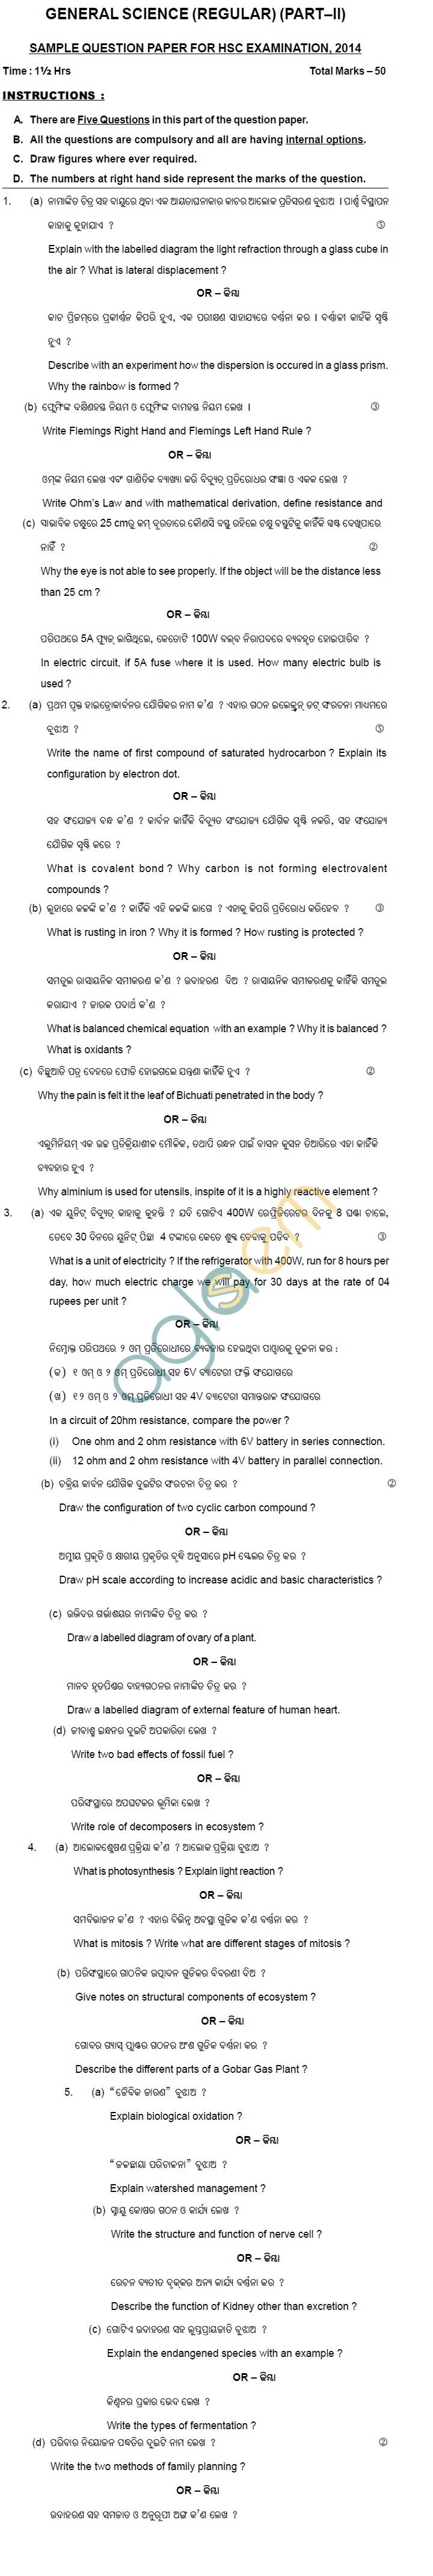 Odisha Board Sample Papers for HSC Exam 2014 - General Science